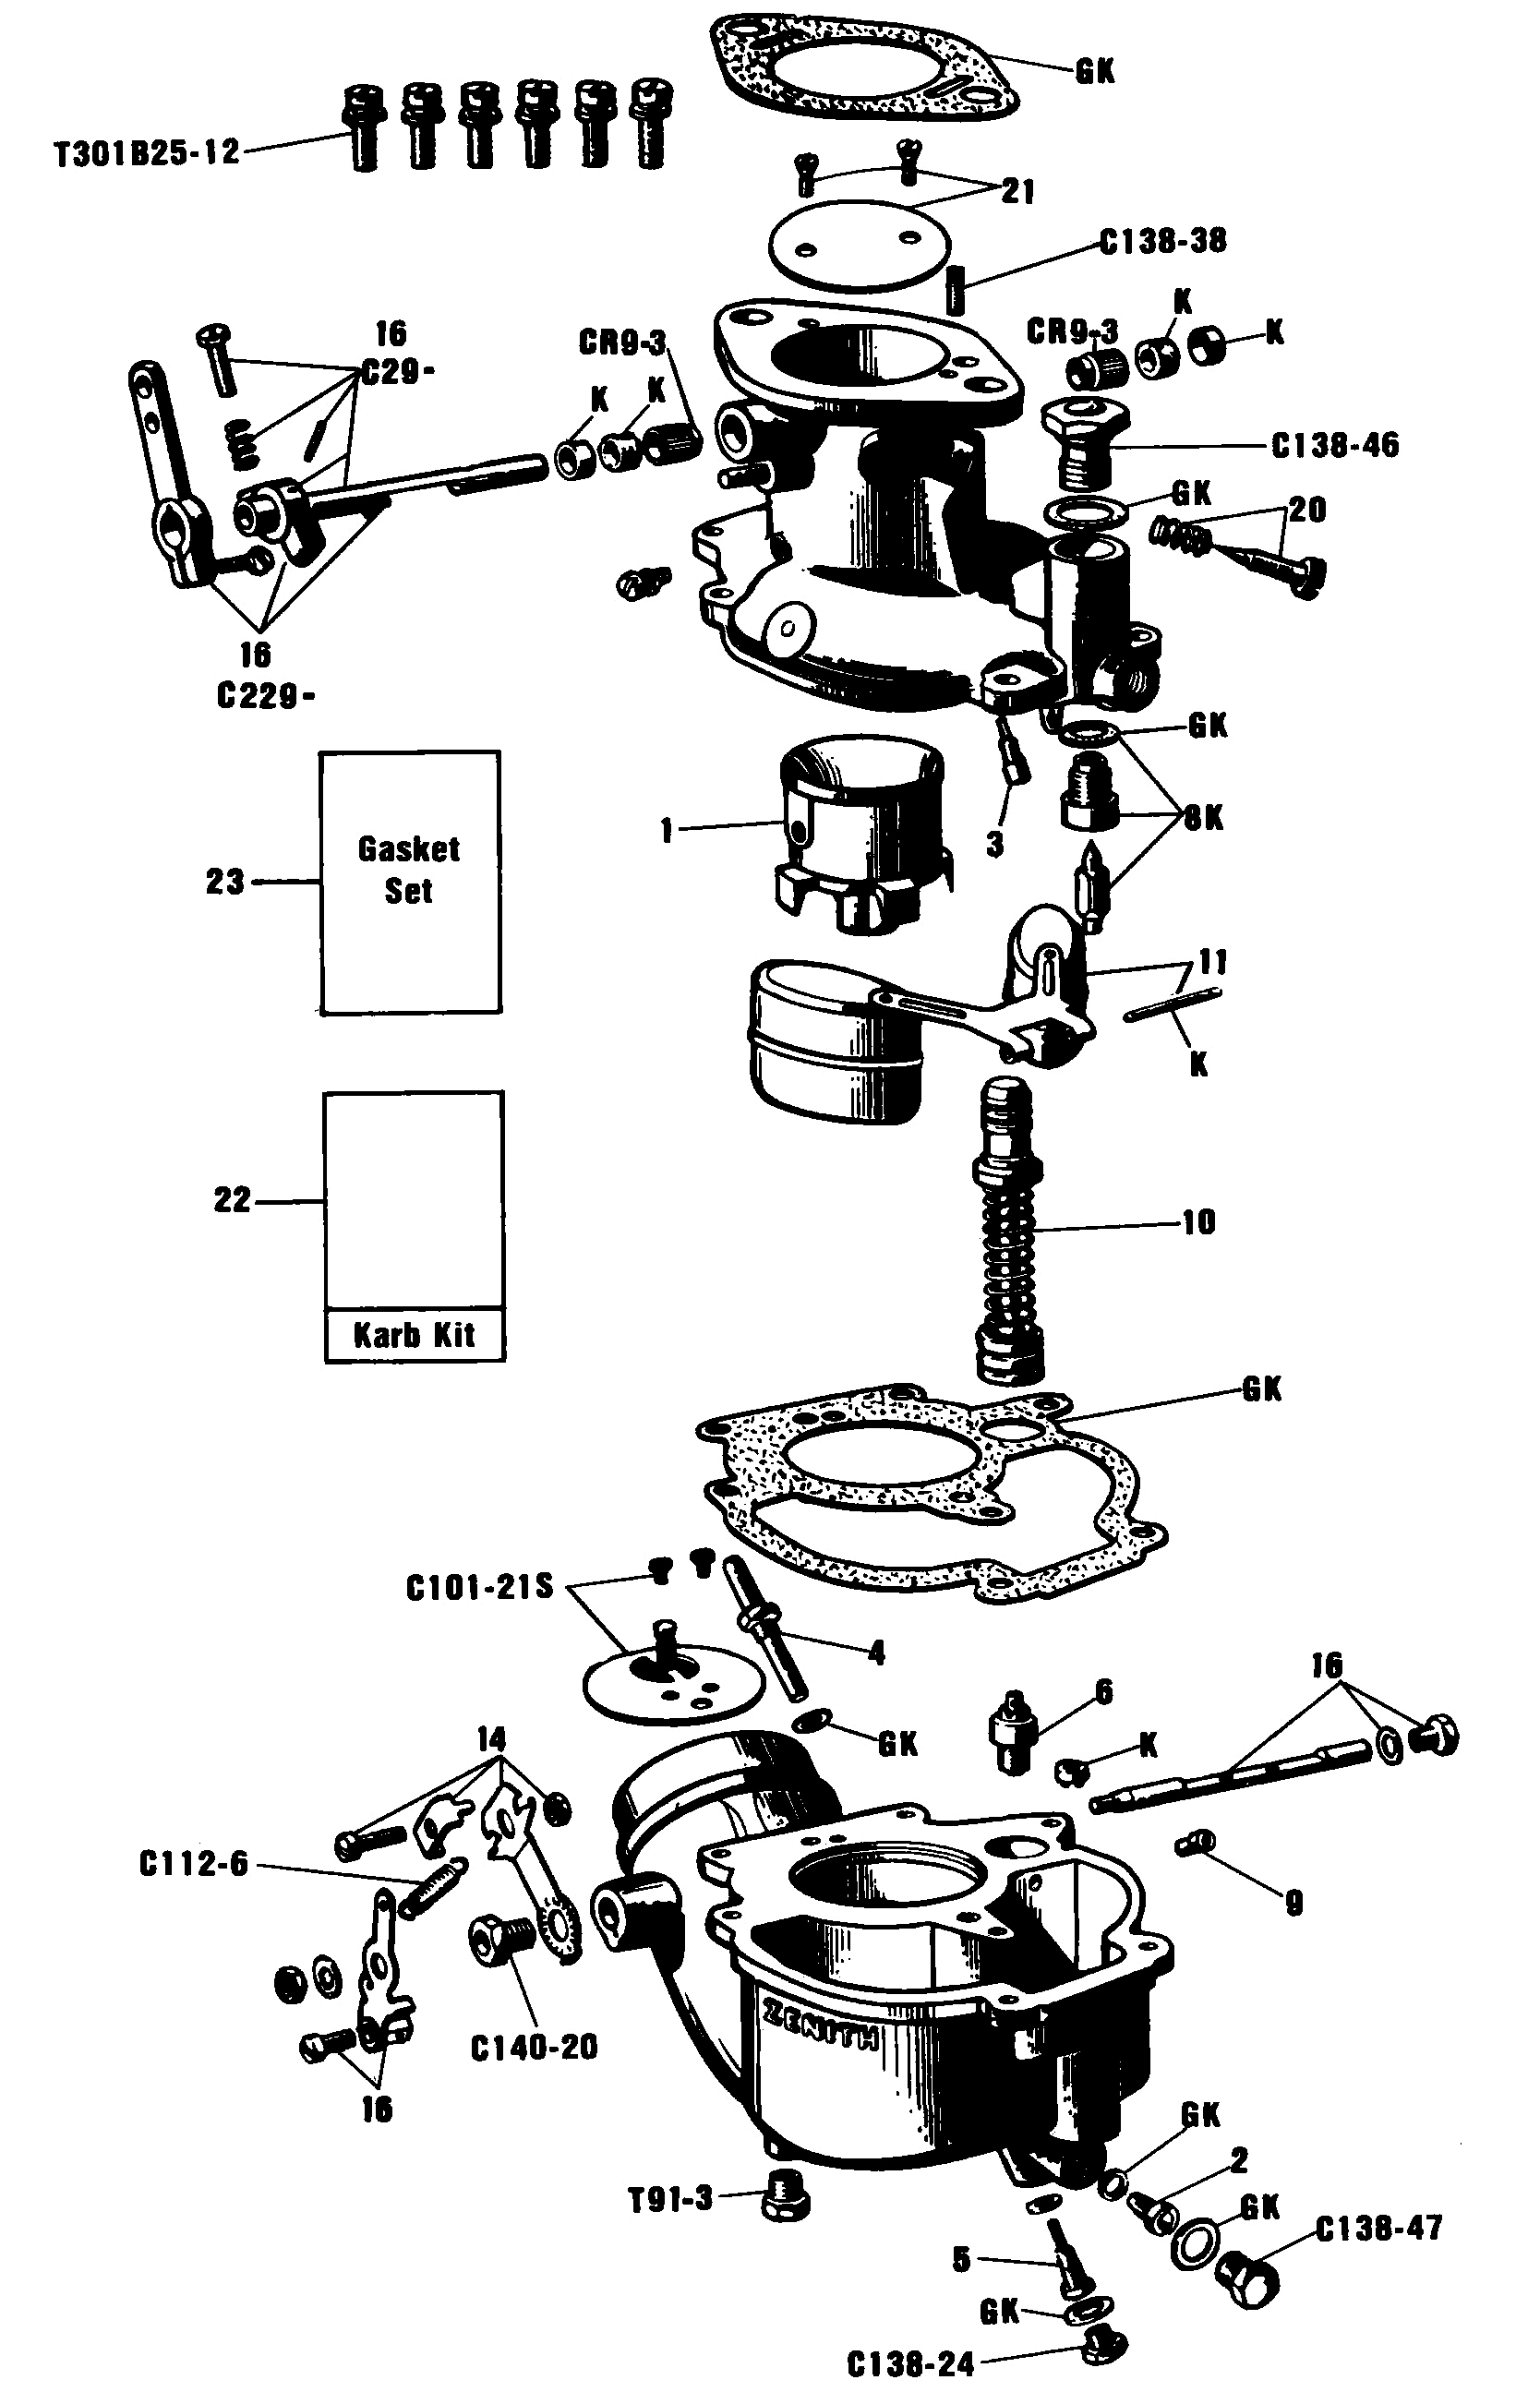 Model A Zenith Carburetor Diagram Pictures To Pin On